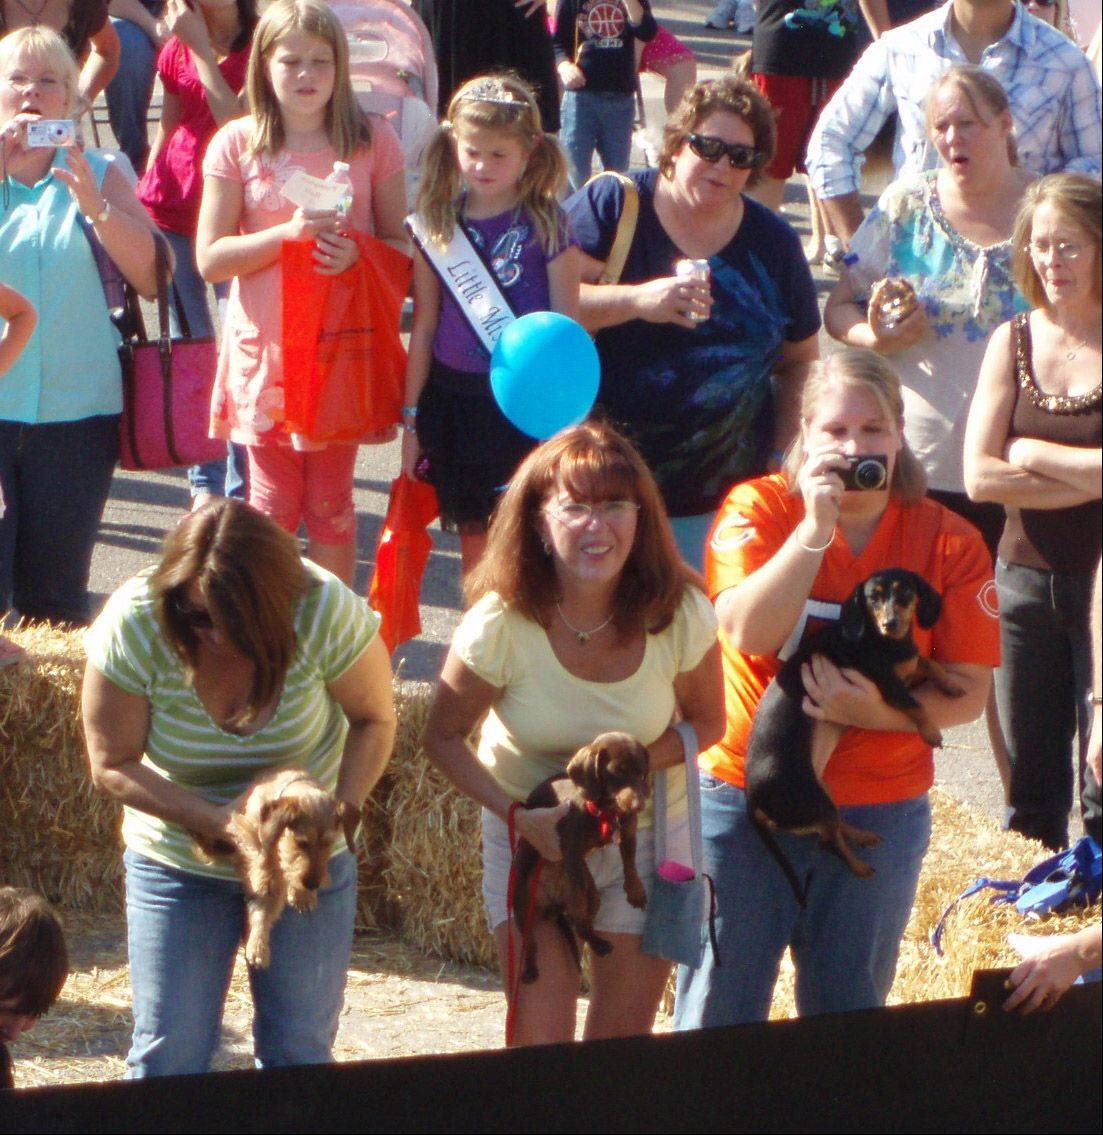 Competitors ready to participate in the Weiner Races at the Antioch's Fall Fest.